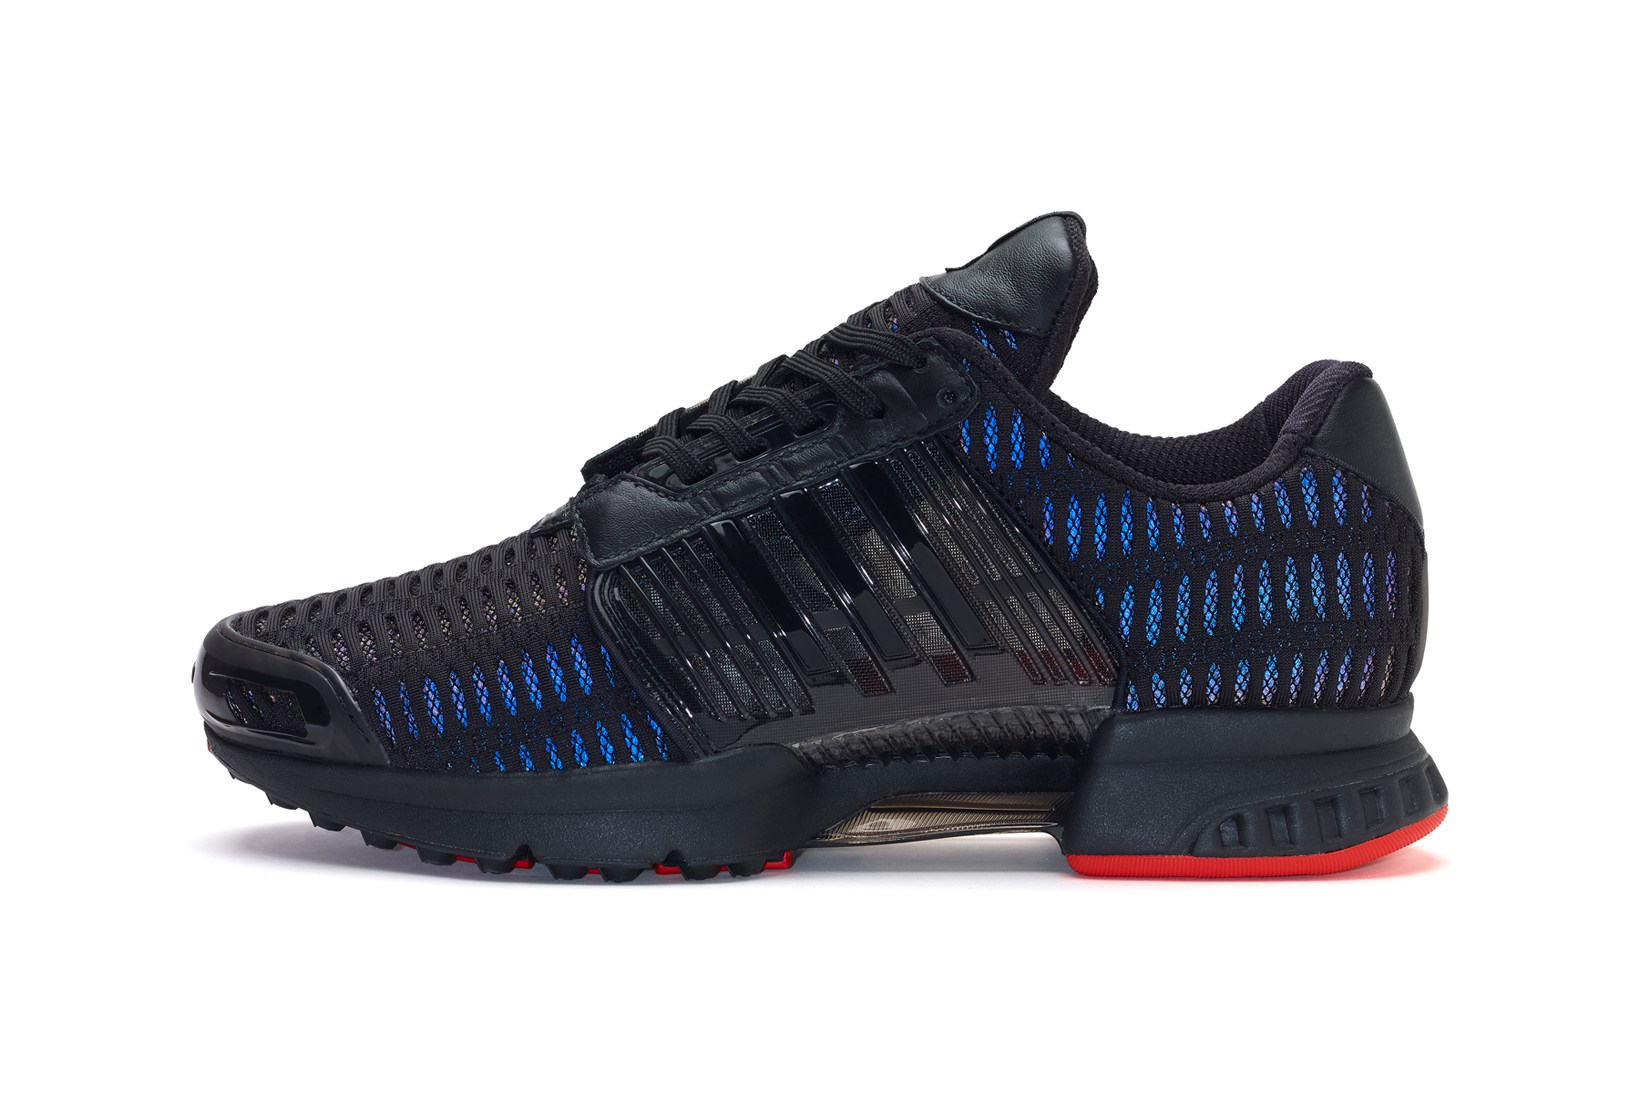 shoe-gallery-x-adidas-climacool-1-flight-305-4